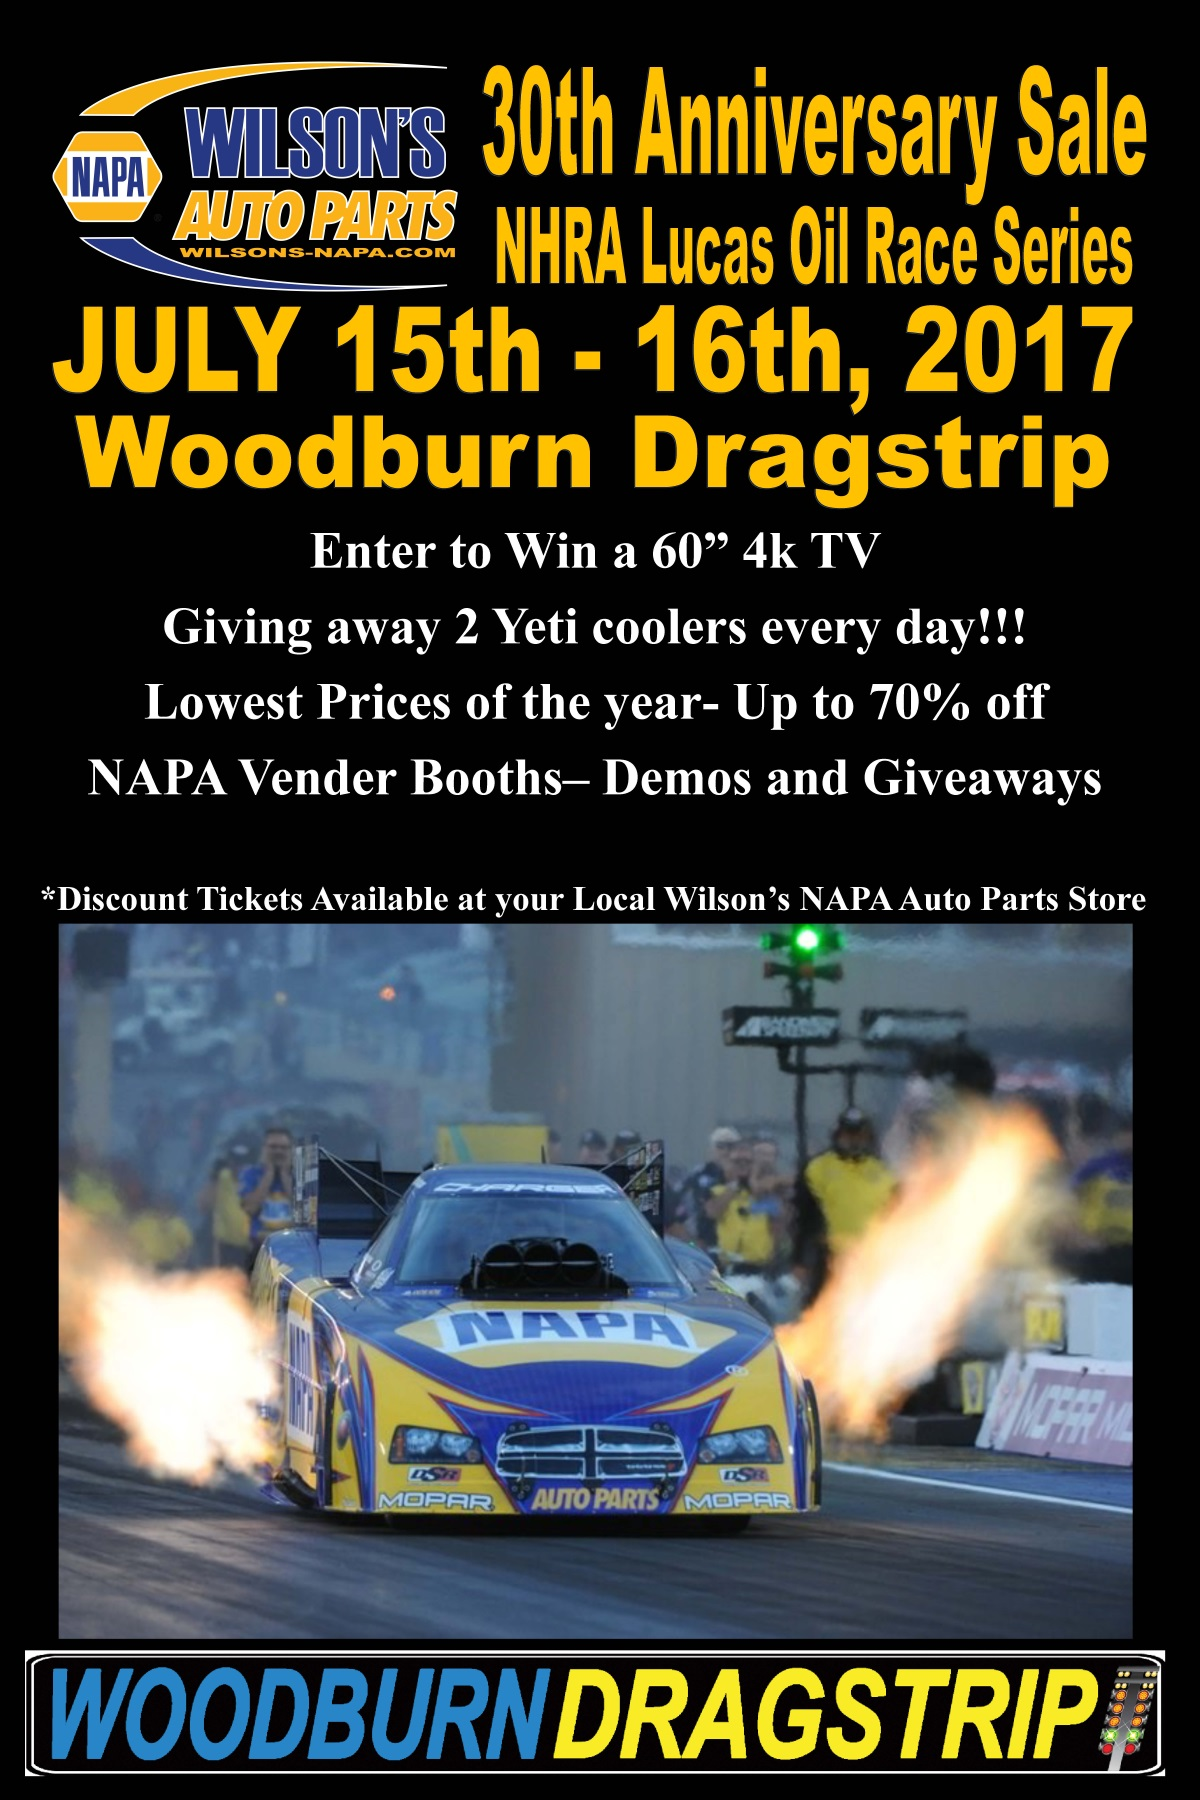 *discount tickets available at your local wilson's napa auto parts store